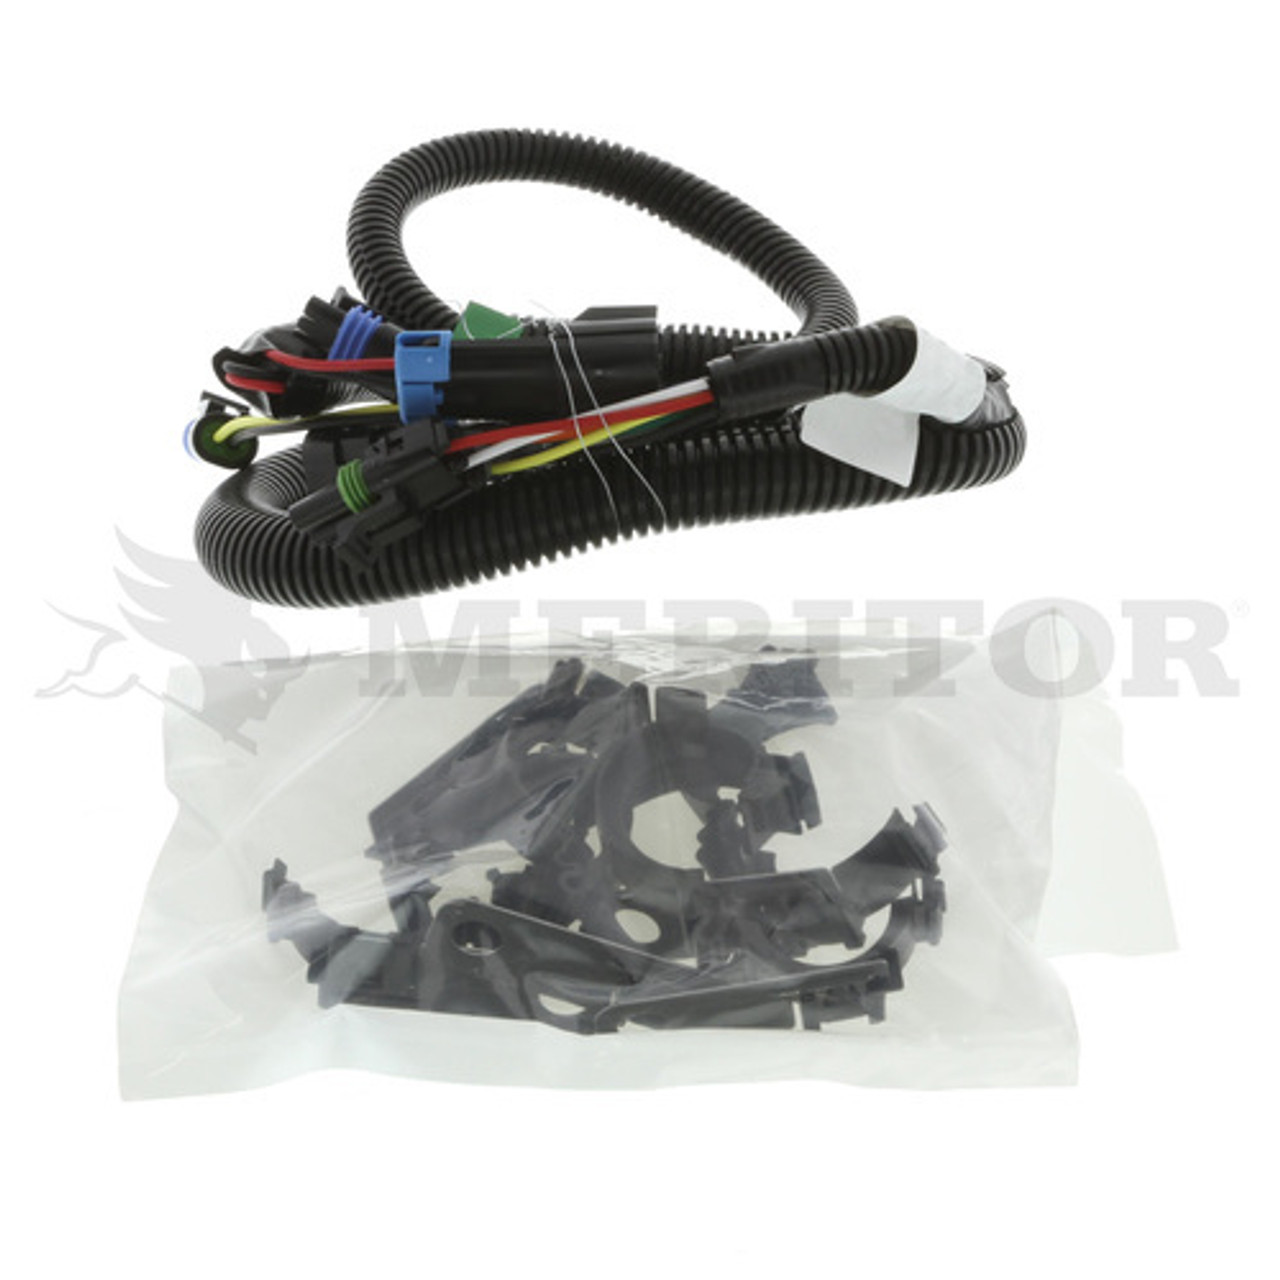 small resolution of  kit5431 rockwell meritor transmission wiring harness kit g on meritor wabco retarder relay detroit diesel